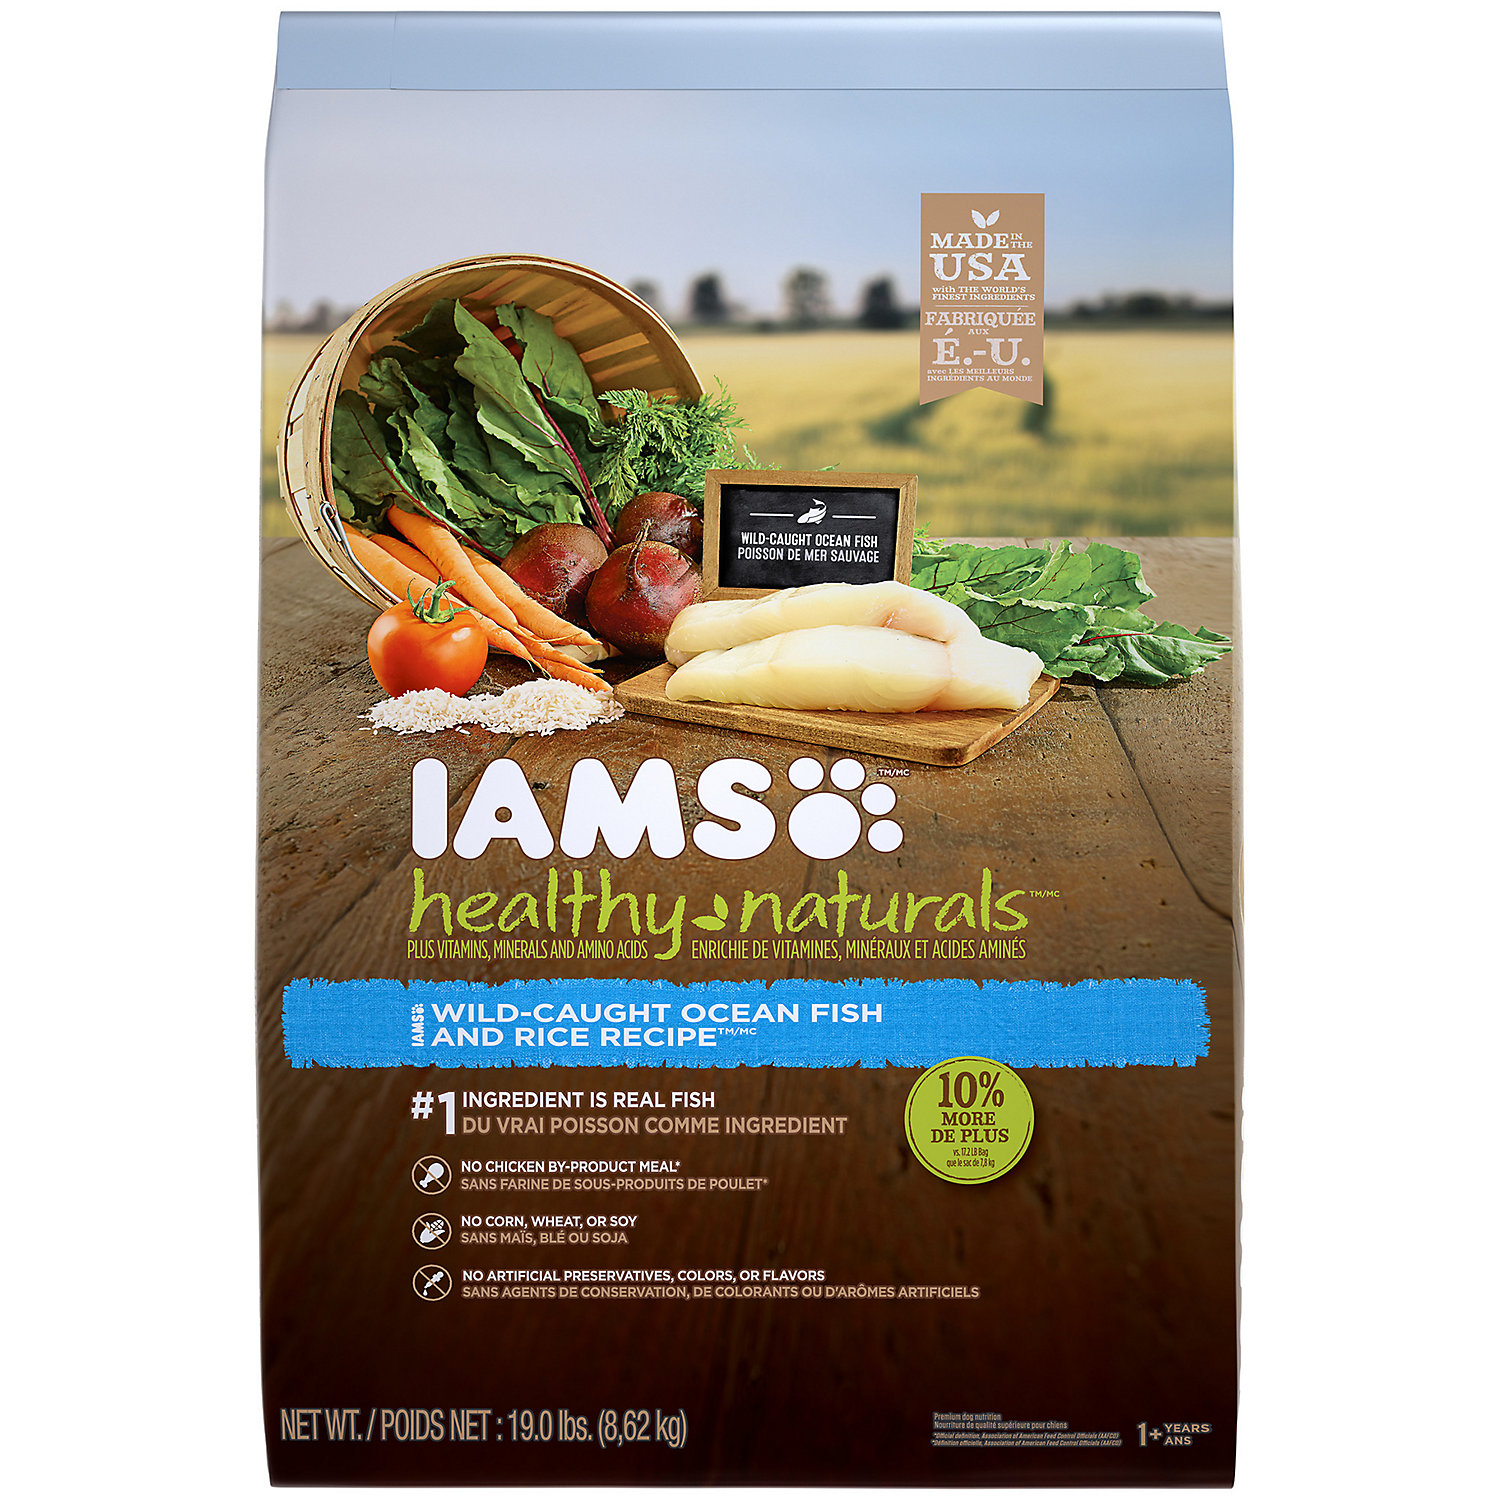 Iams Healthy Naturals Ocean Fish Rice Barley Adult Dog Food